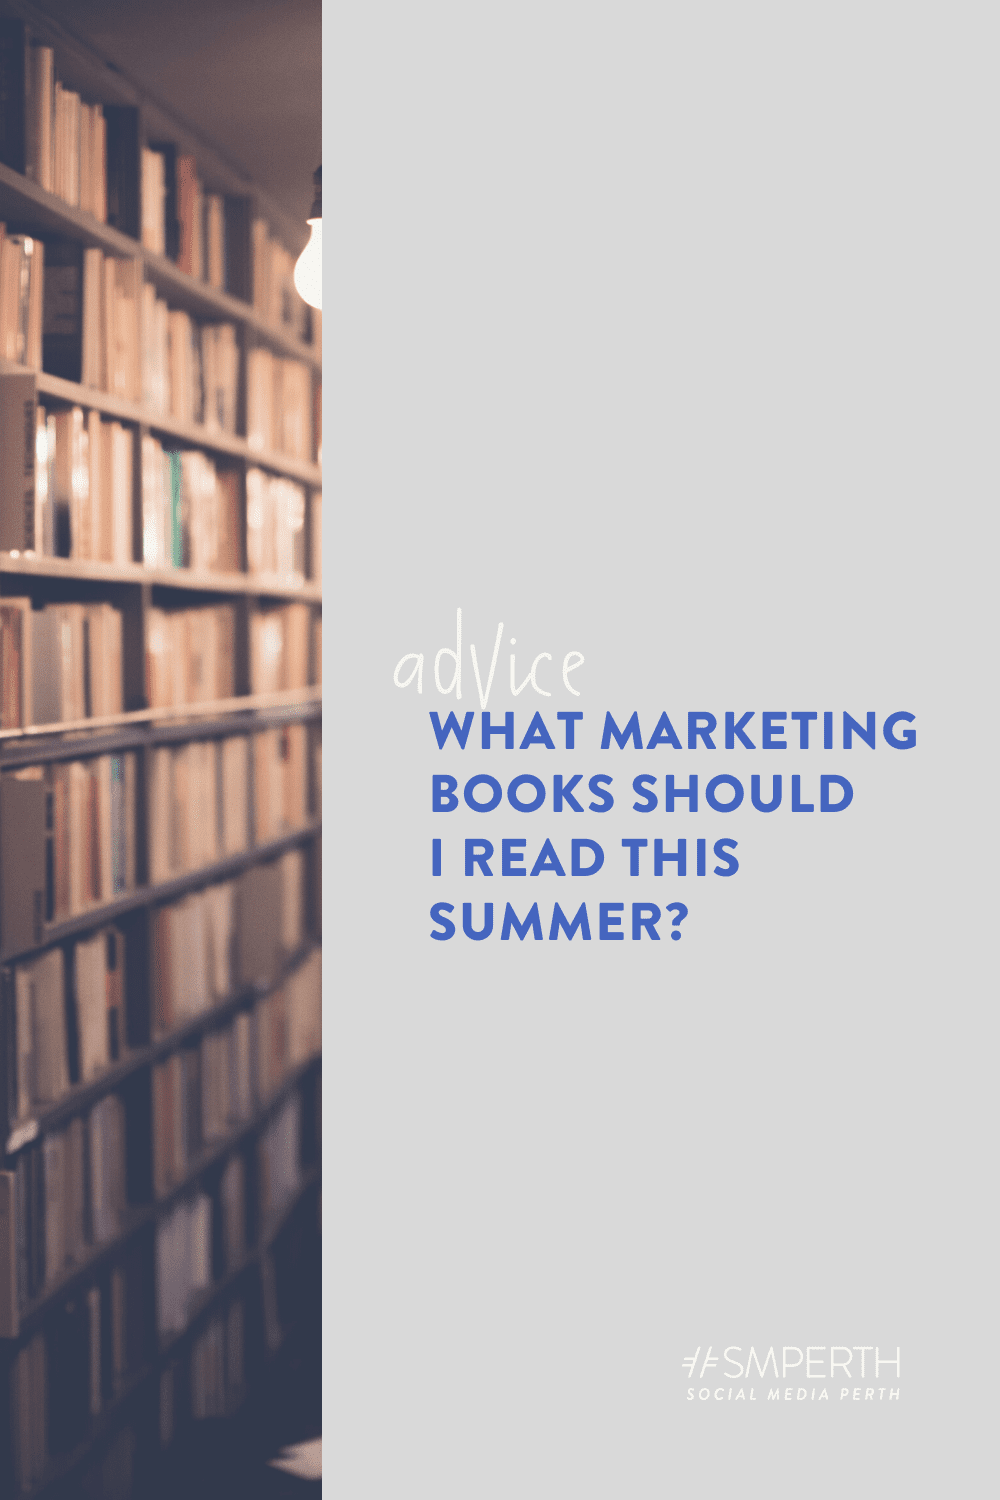 Social media and marketing books to read this summer